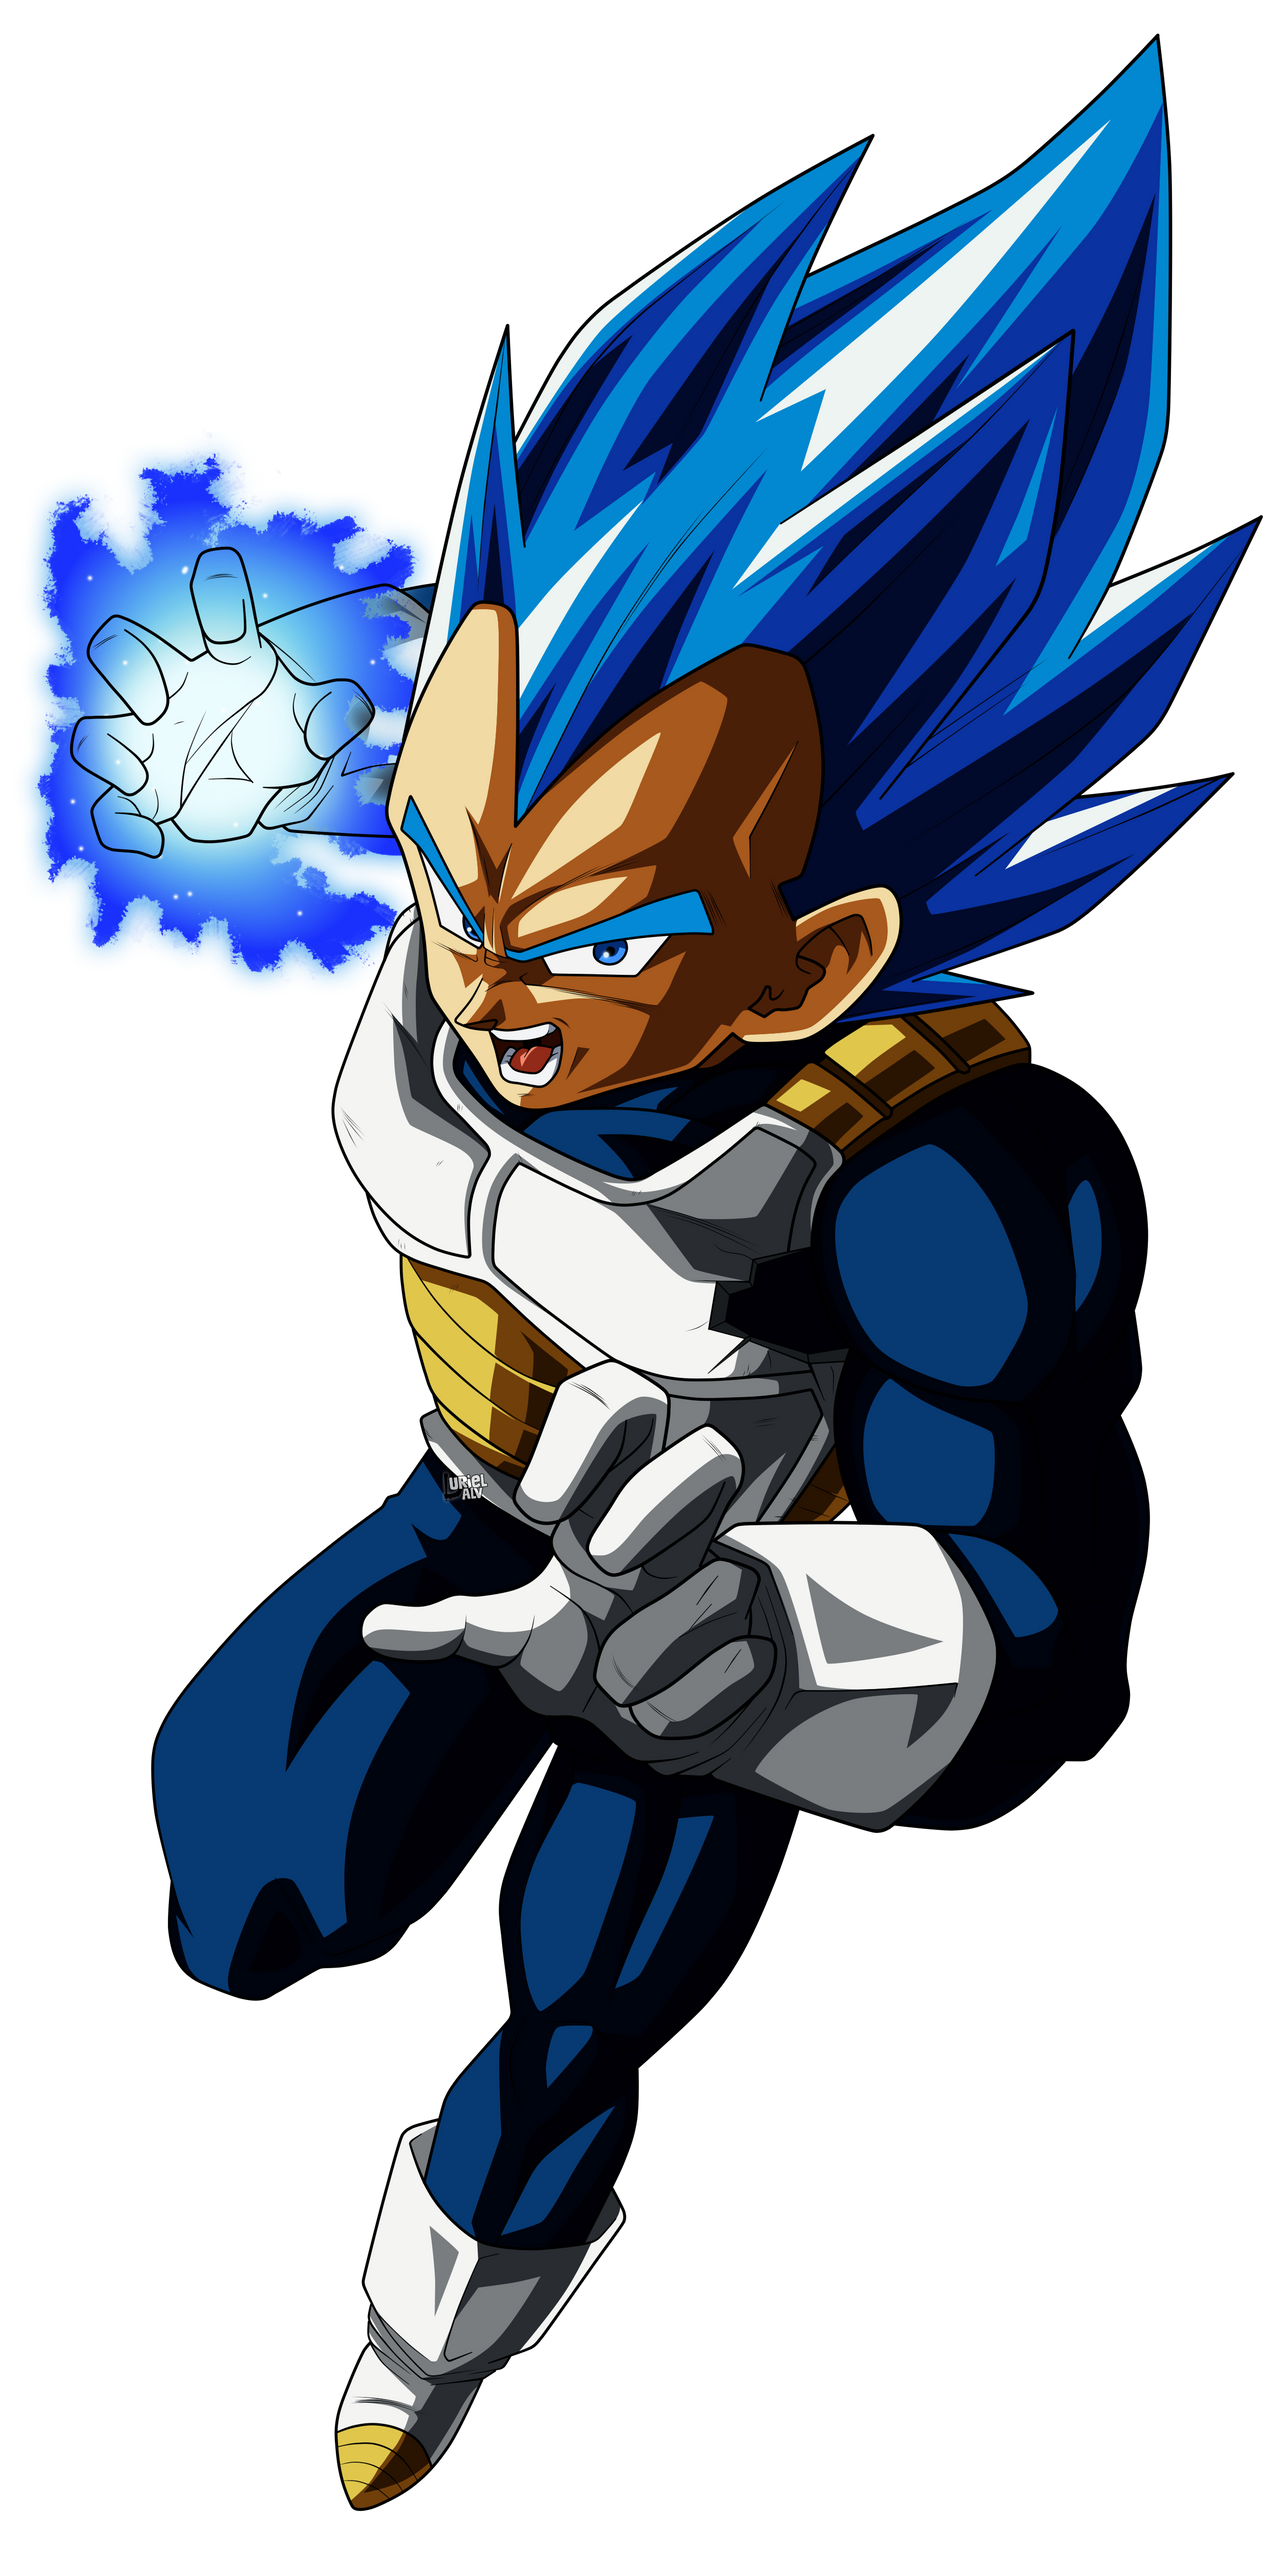 Vegeta Blue by UrielALV on DeviantArt